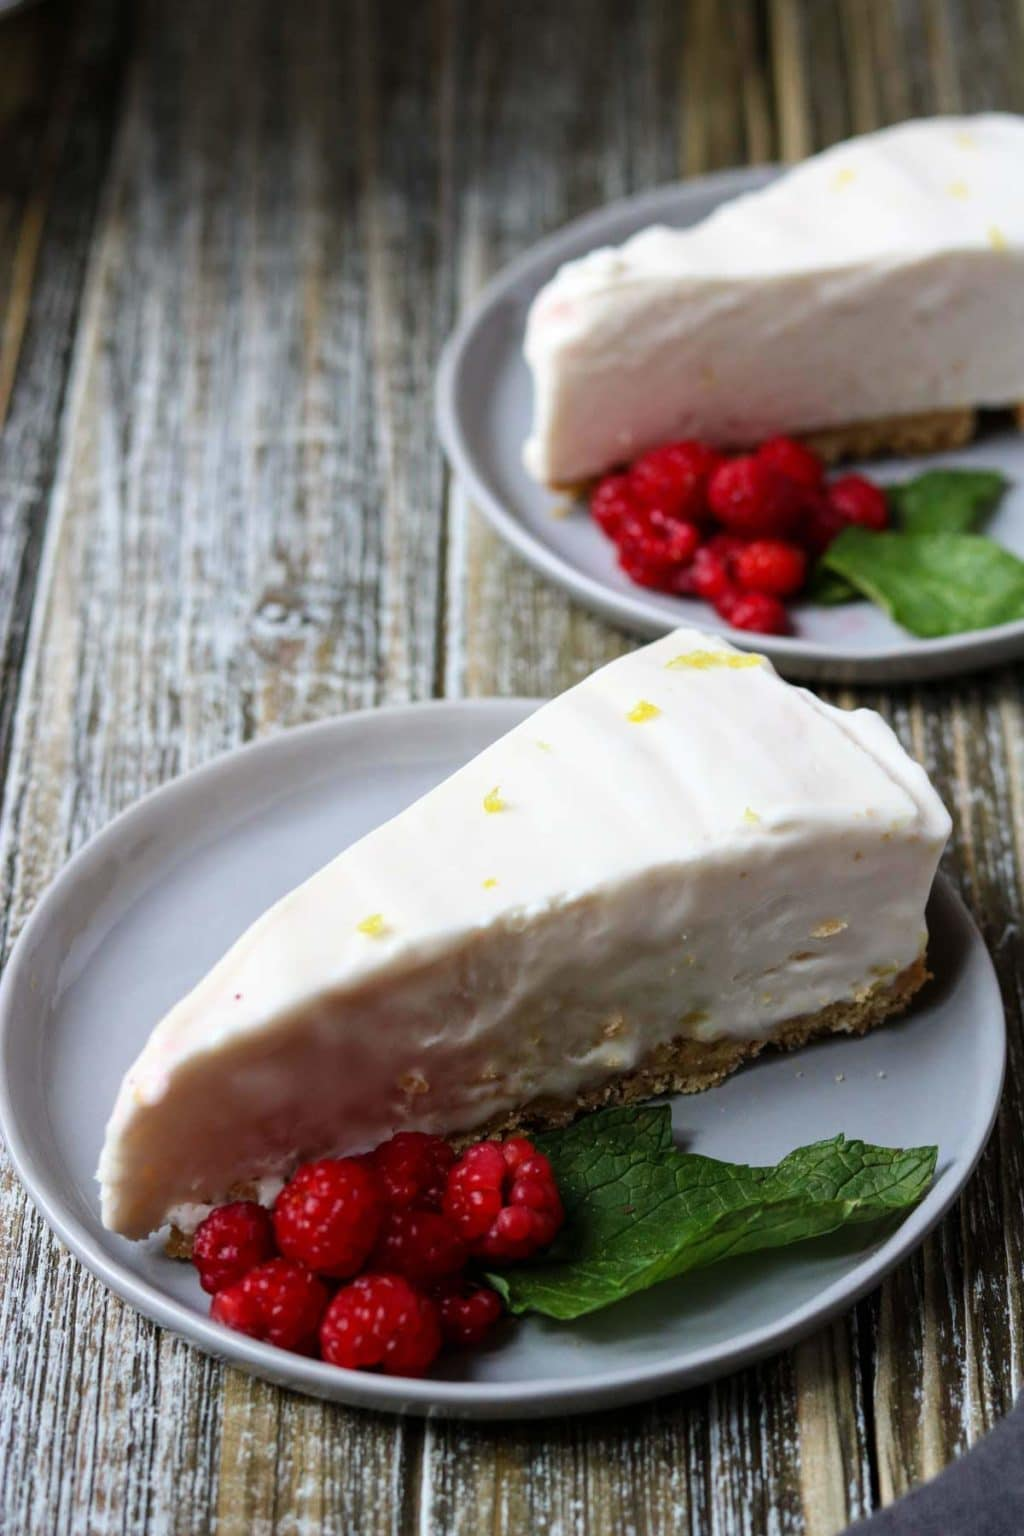 Two slices of Raspberry Lemonade Icebox Pie garnished with fresh raspberries and mint leaves